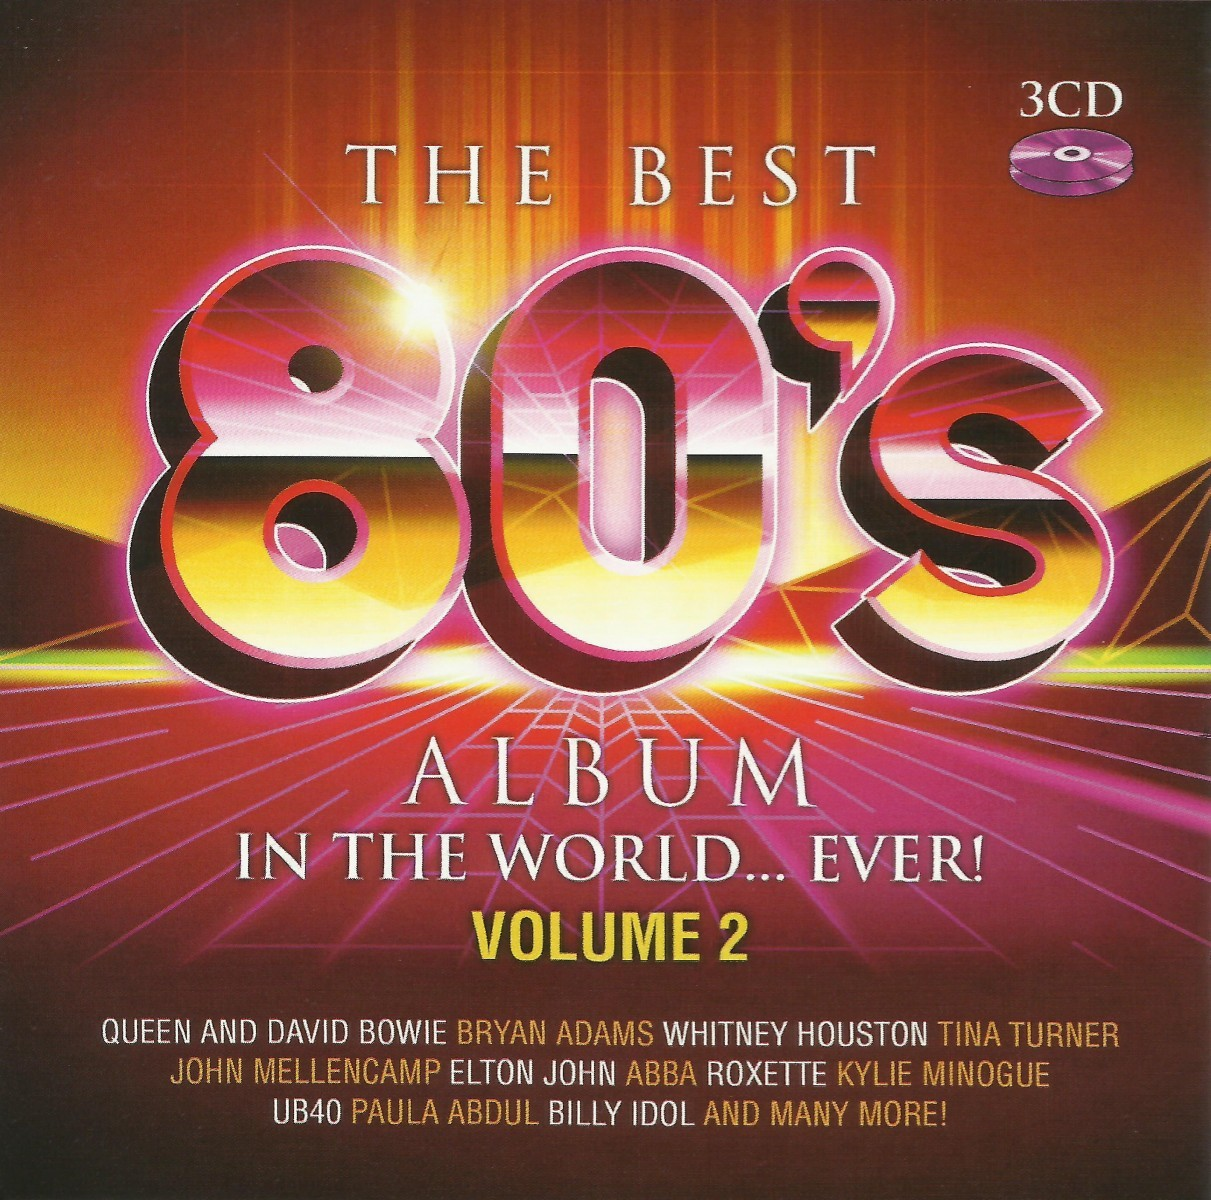 The Best 80's Album In The World...Ever Vol.2 CD - DARCD 3169